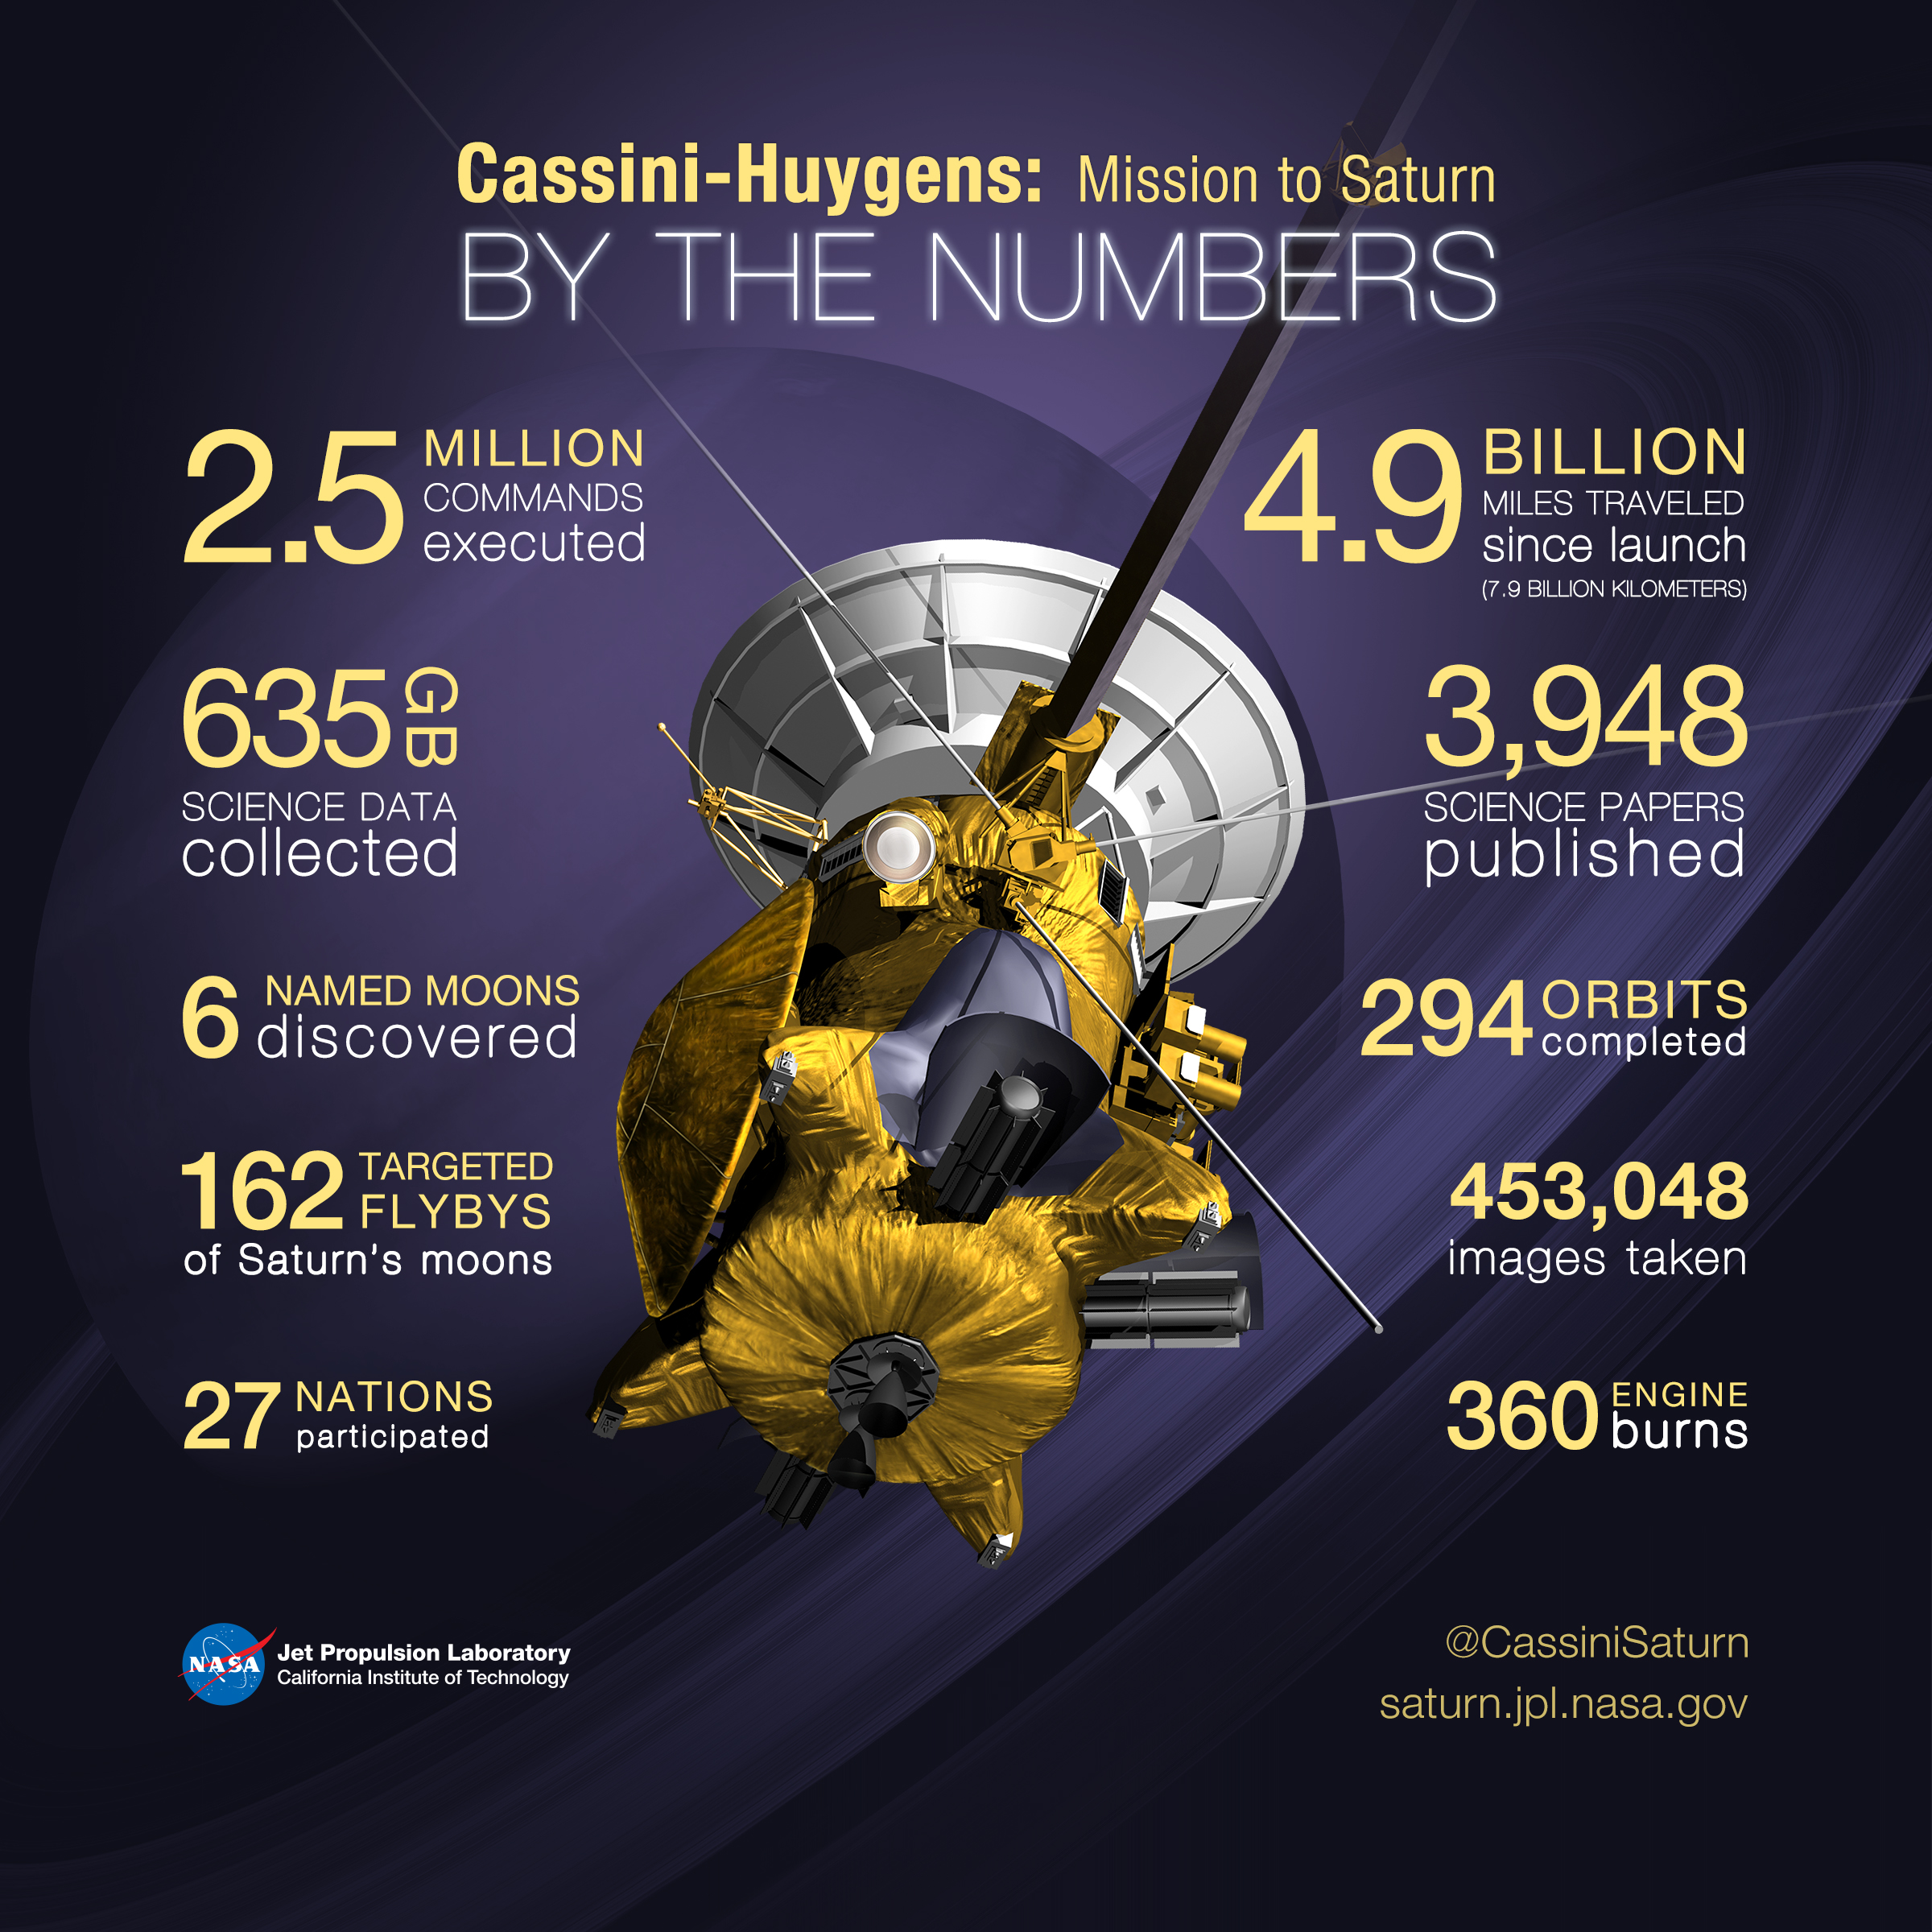 Infographic on data collected by Cassini Spacecraft showing model of the spacecraft